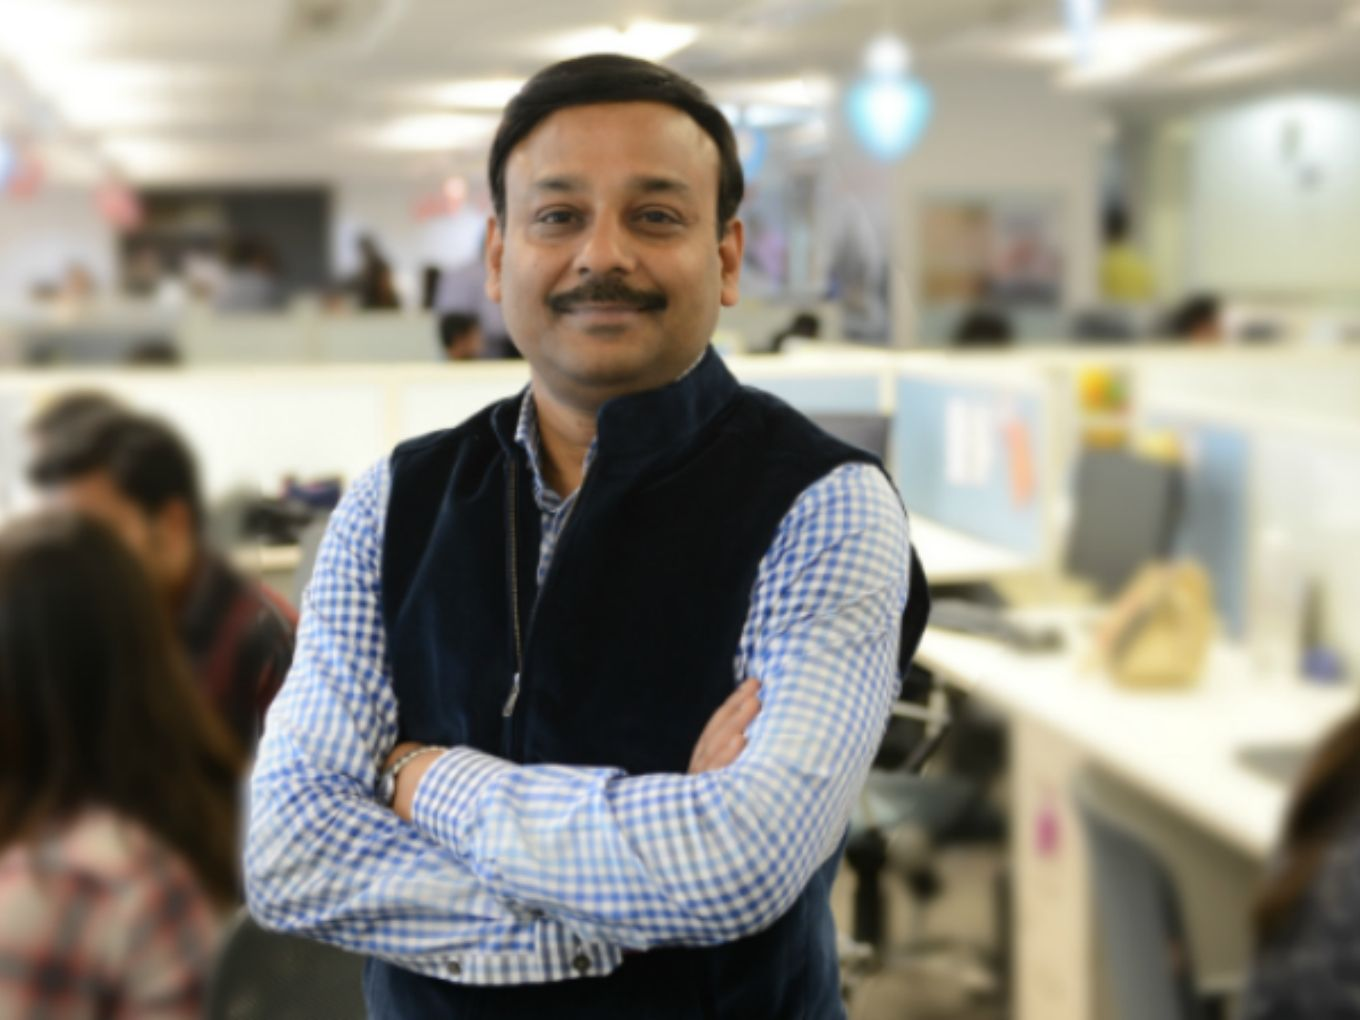 IndiaMART Basks In Post-IPO Glory As It Crosses 100 Mn Users Mark